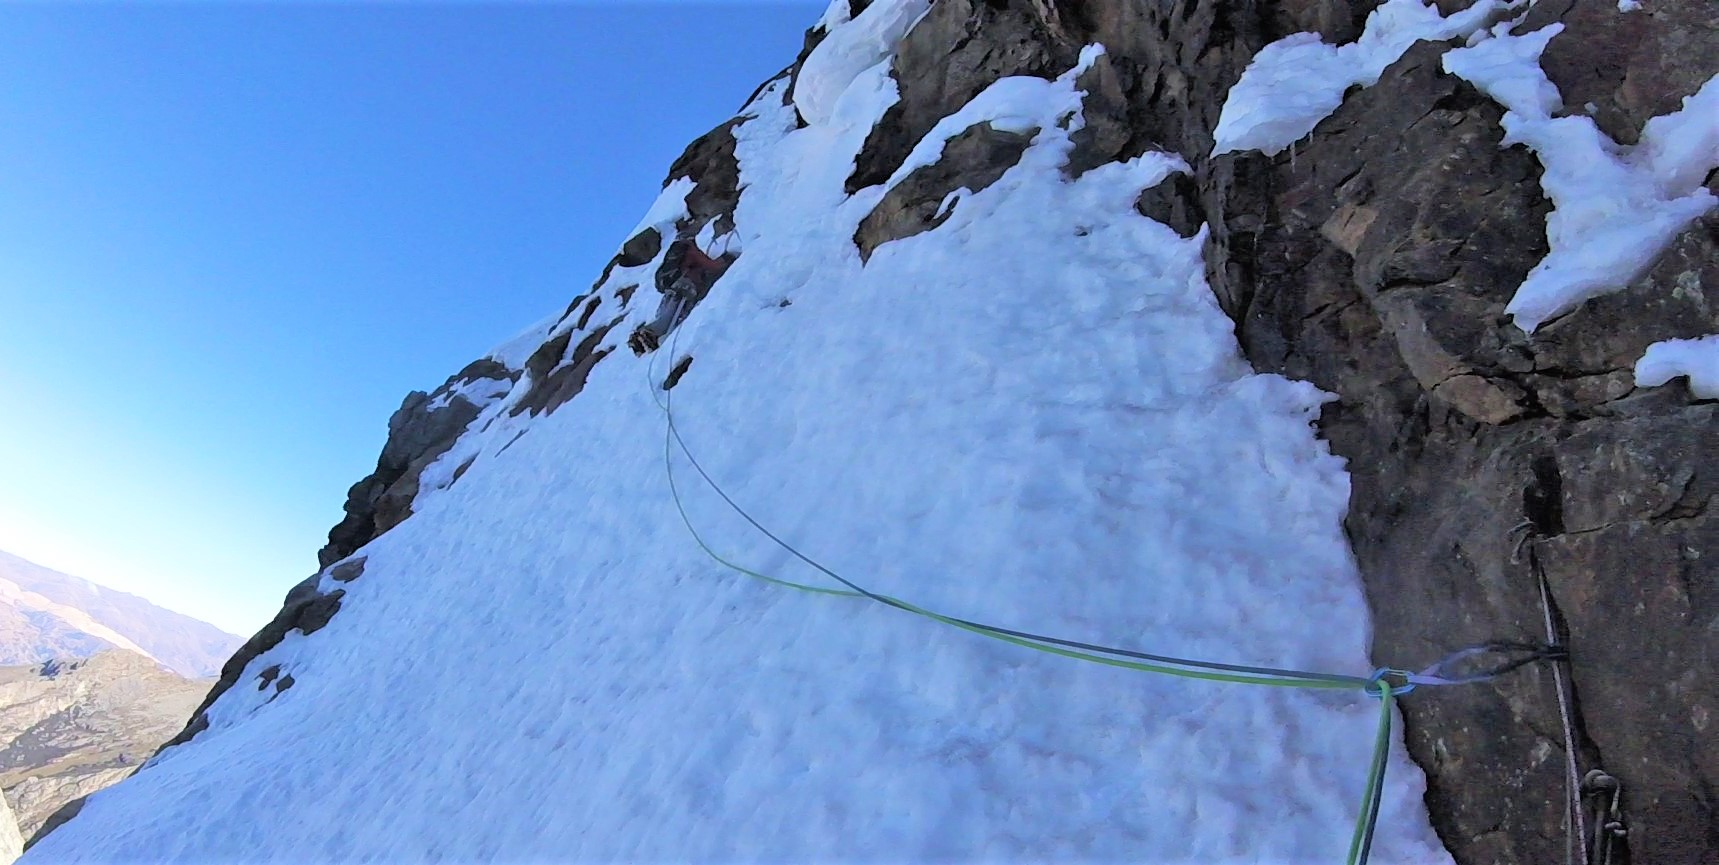 Renato approaching the crux of the climb, a fifteen meter section of vertical rock and snow with poor protection.